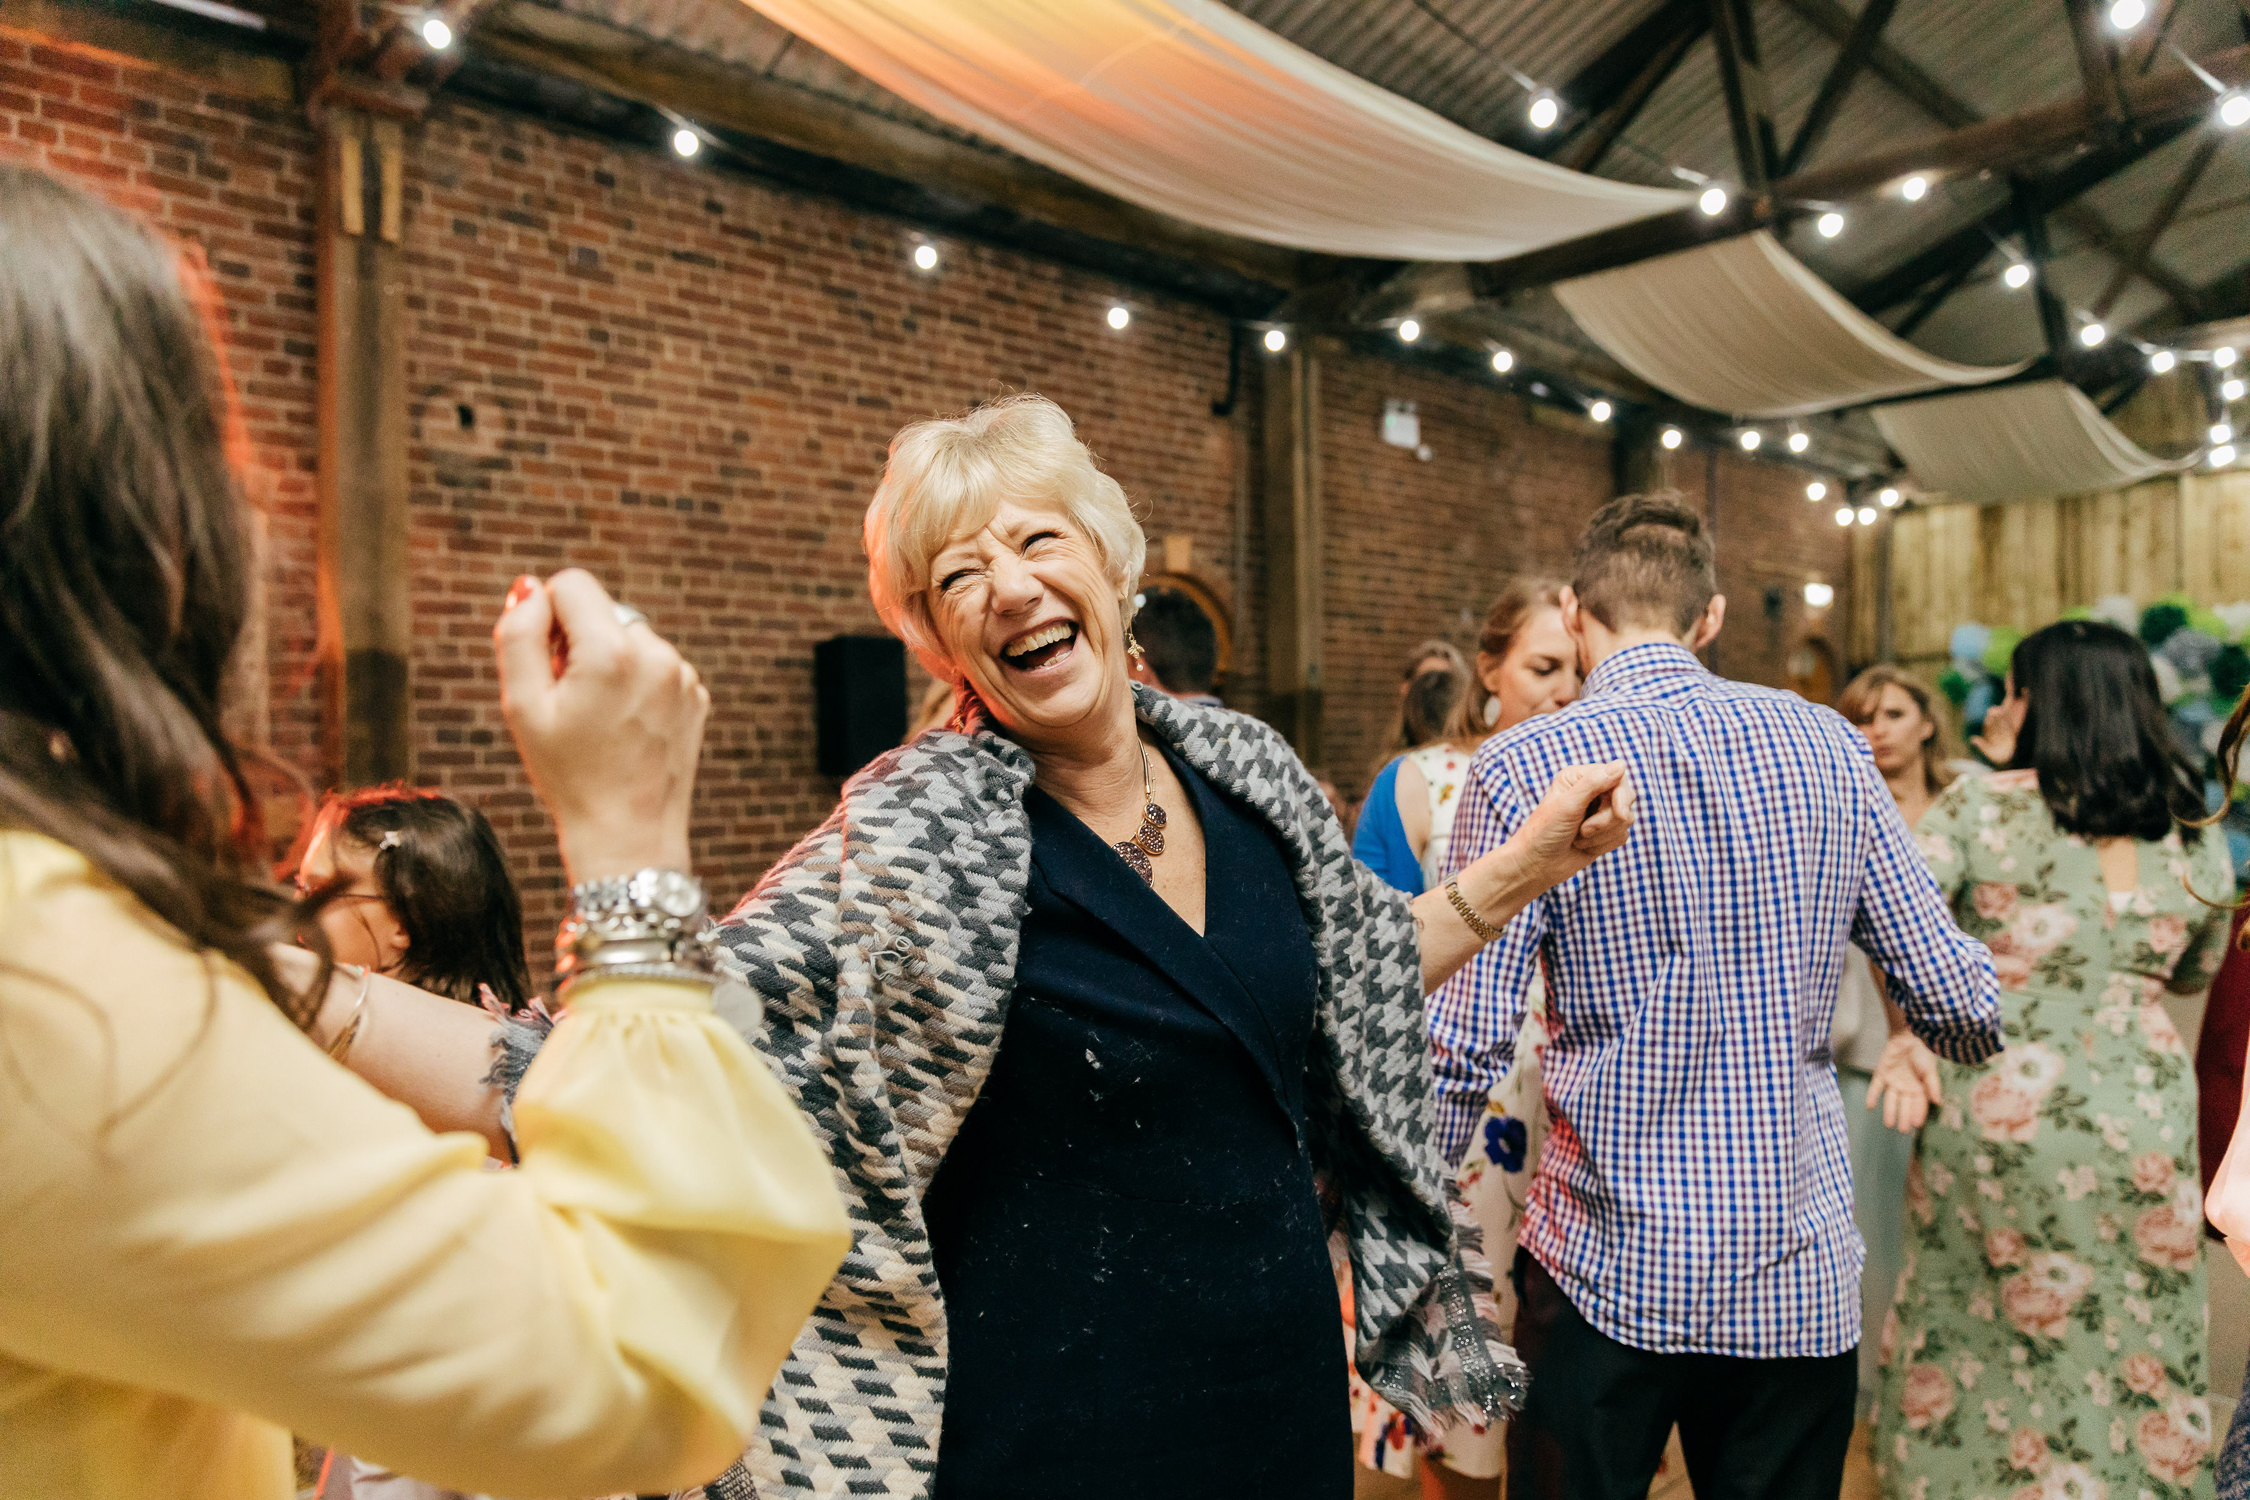 fun and joyful documentary wedding photography of guests dancing